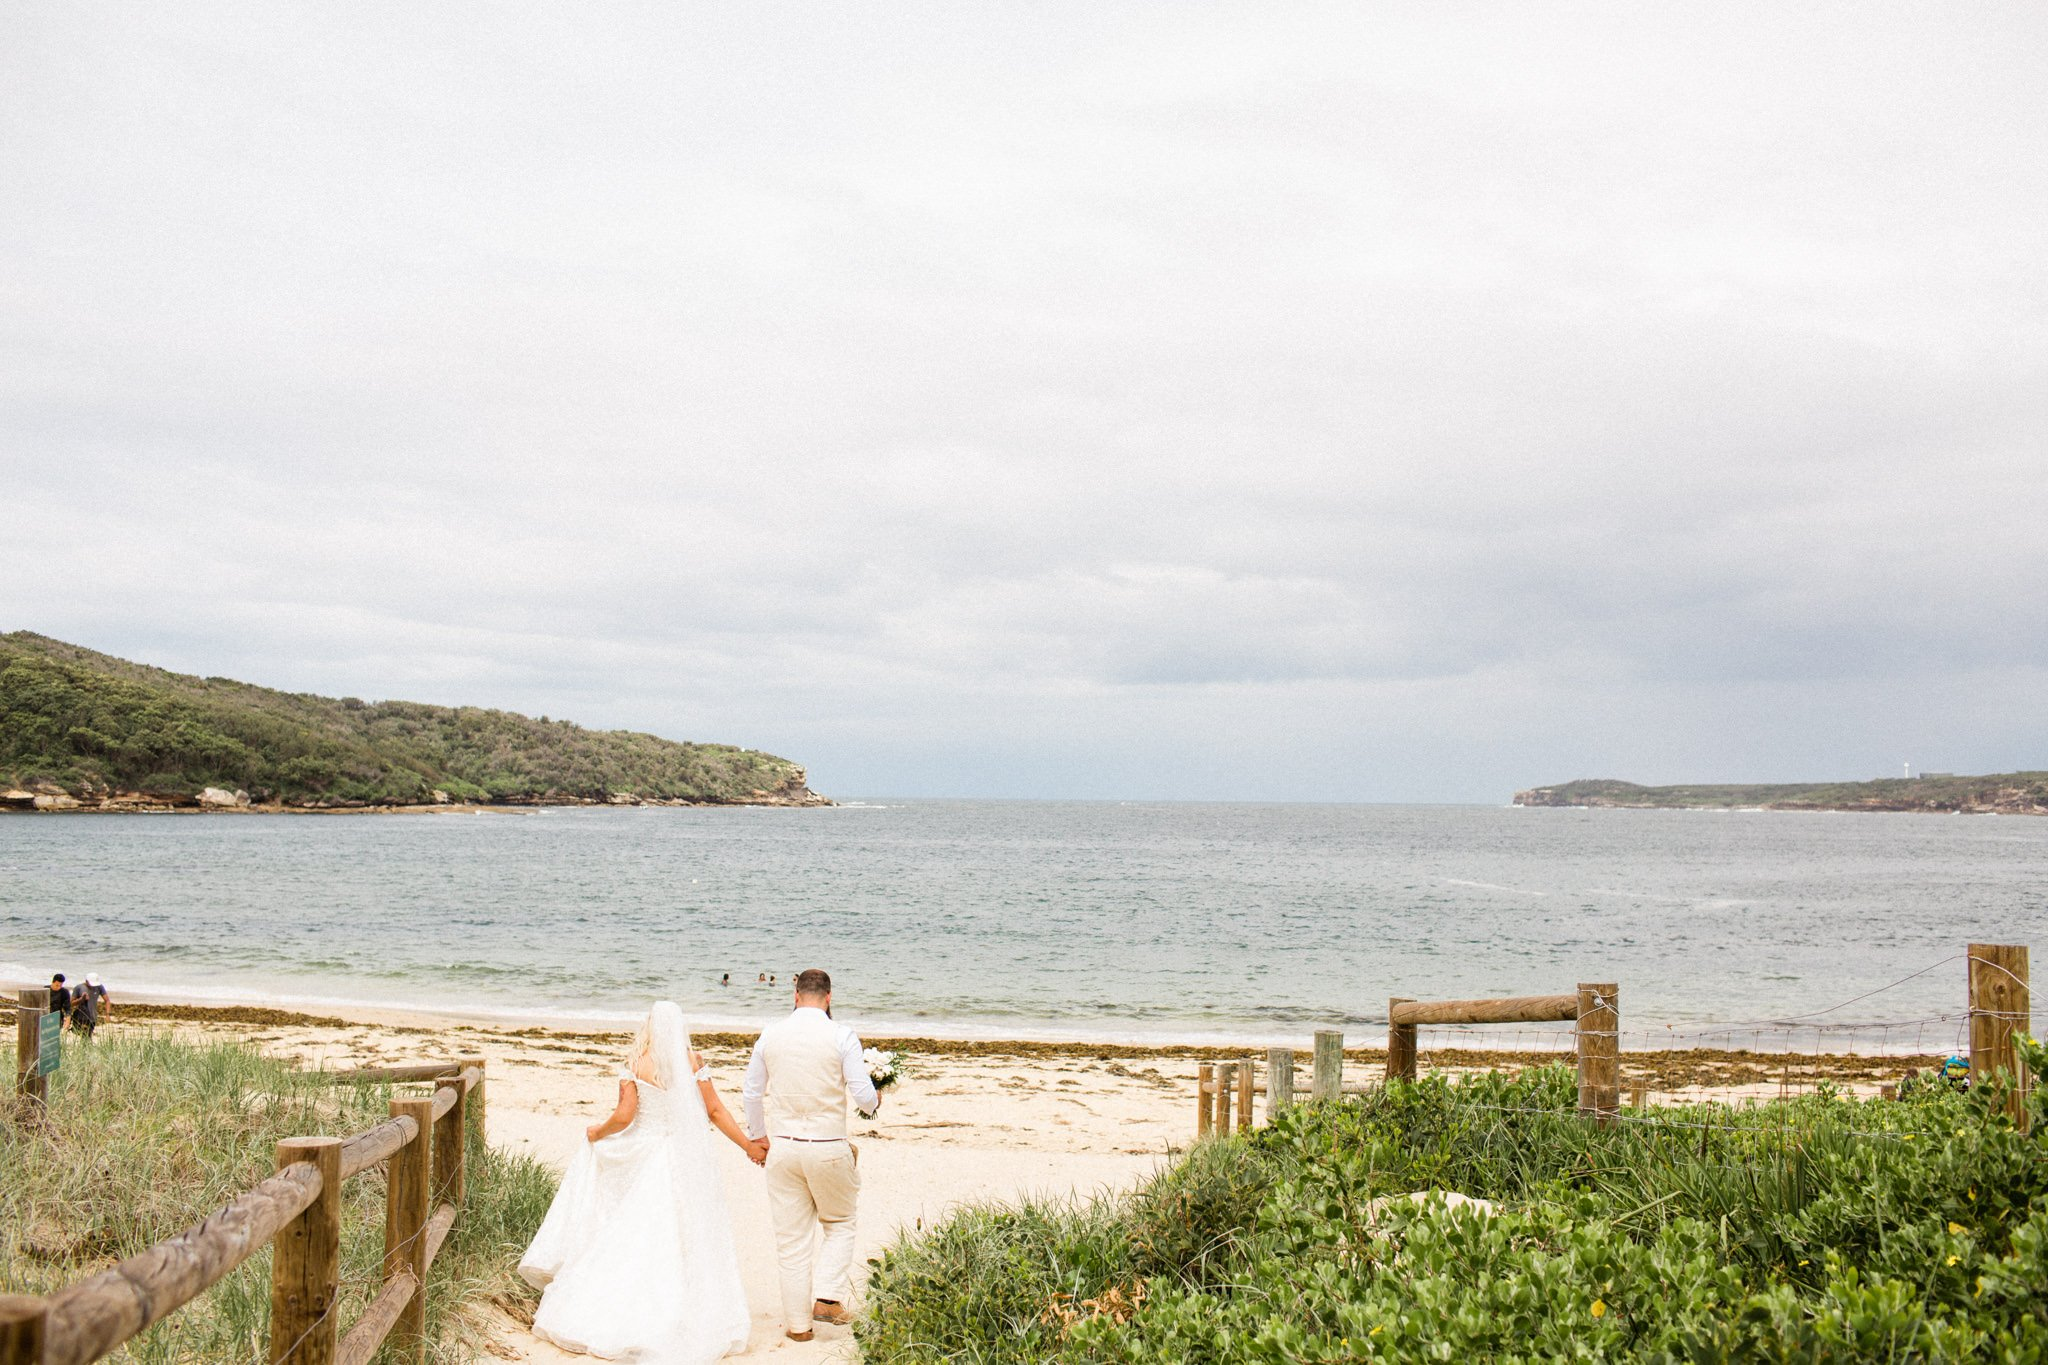 Photograph of couple at the beach in NSW after wedding